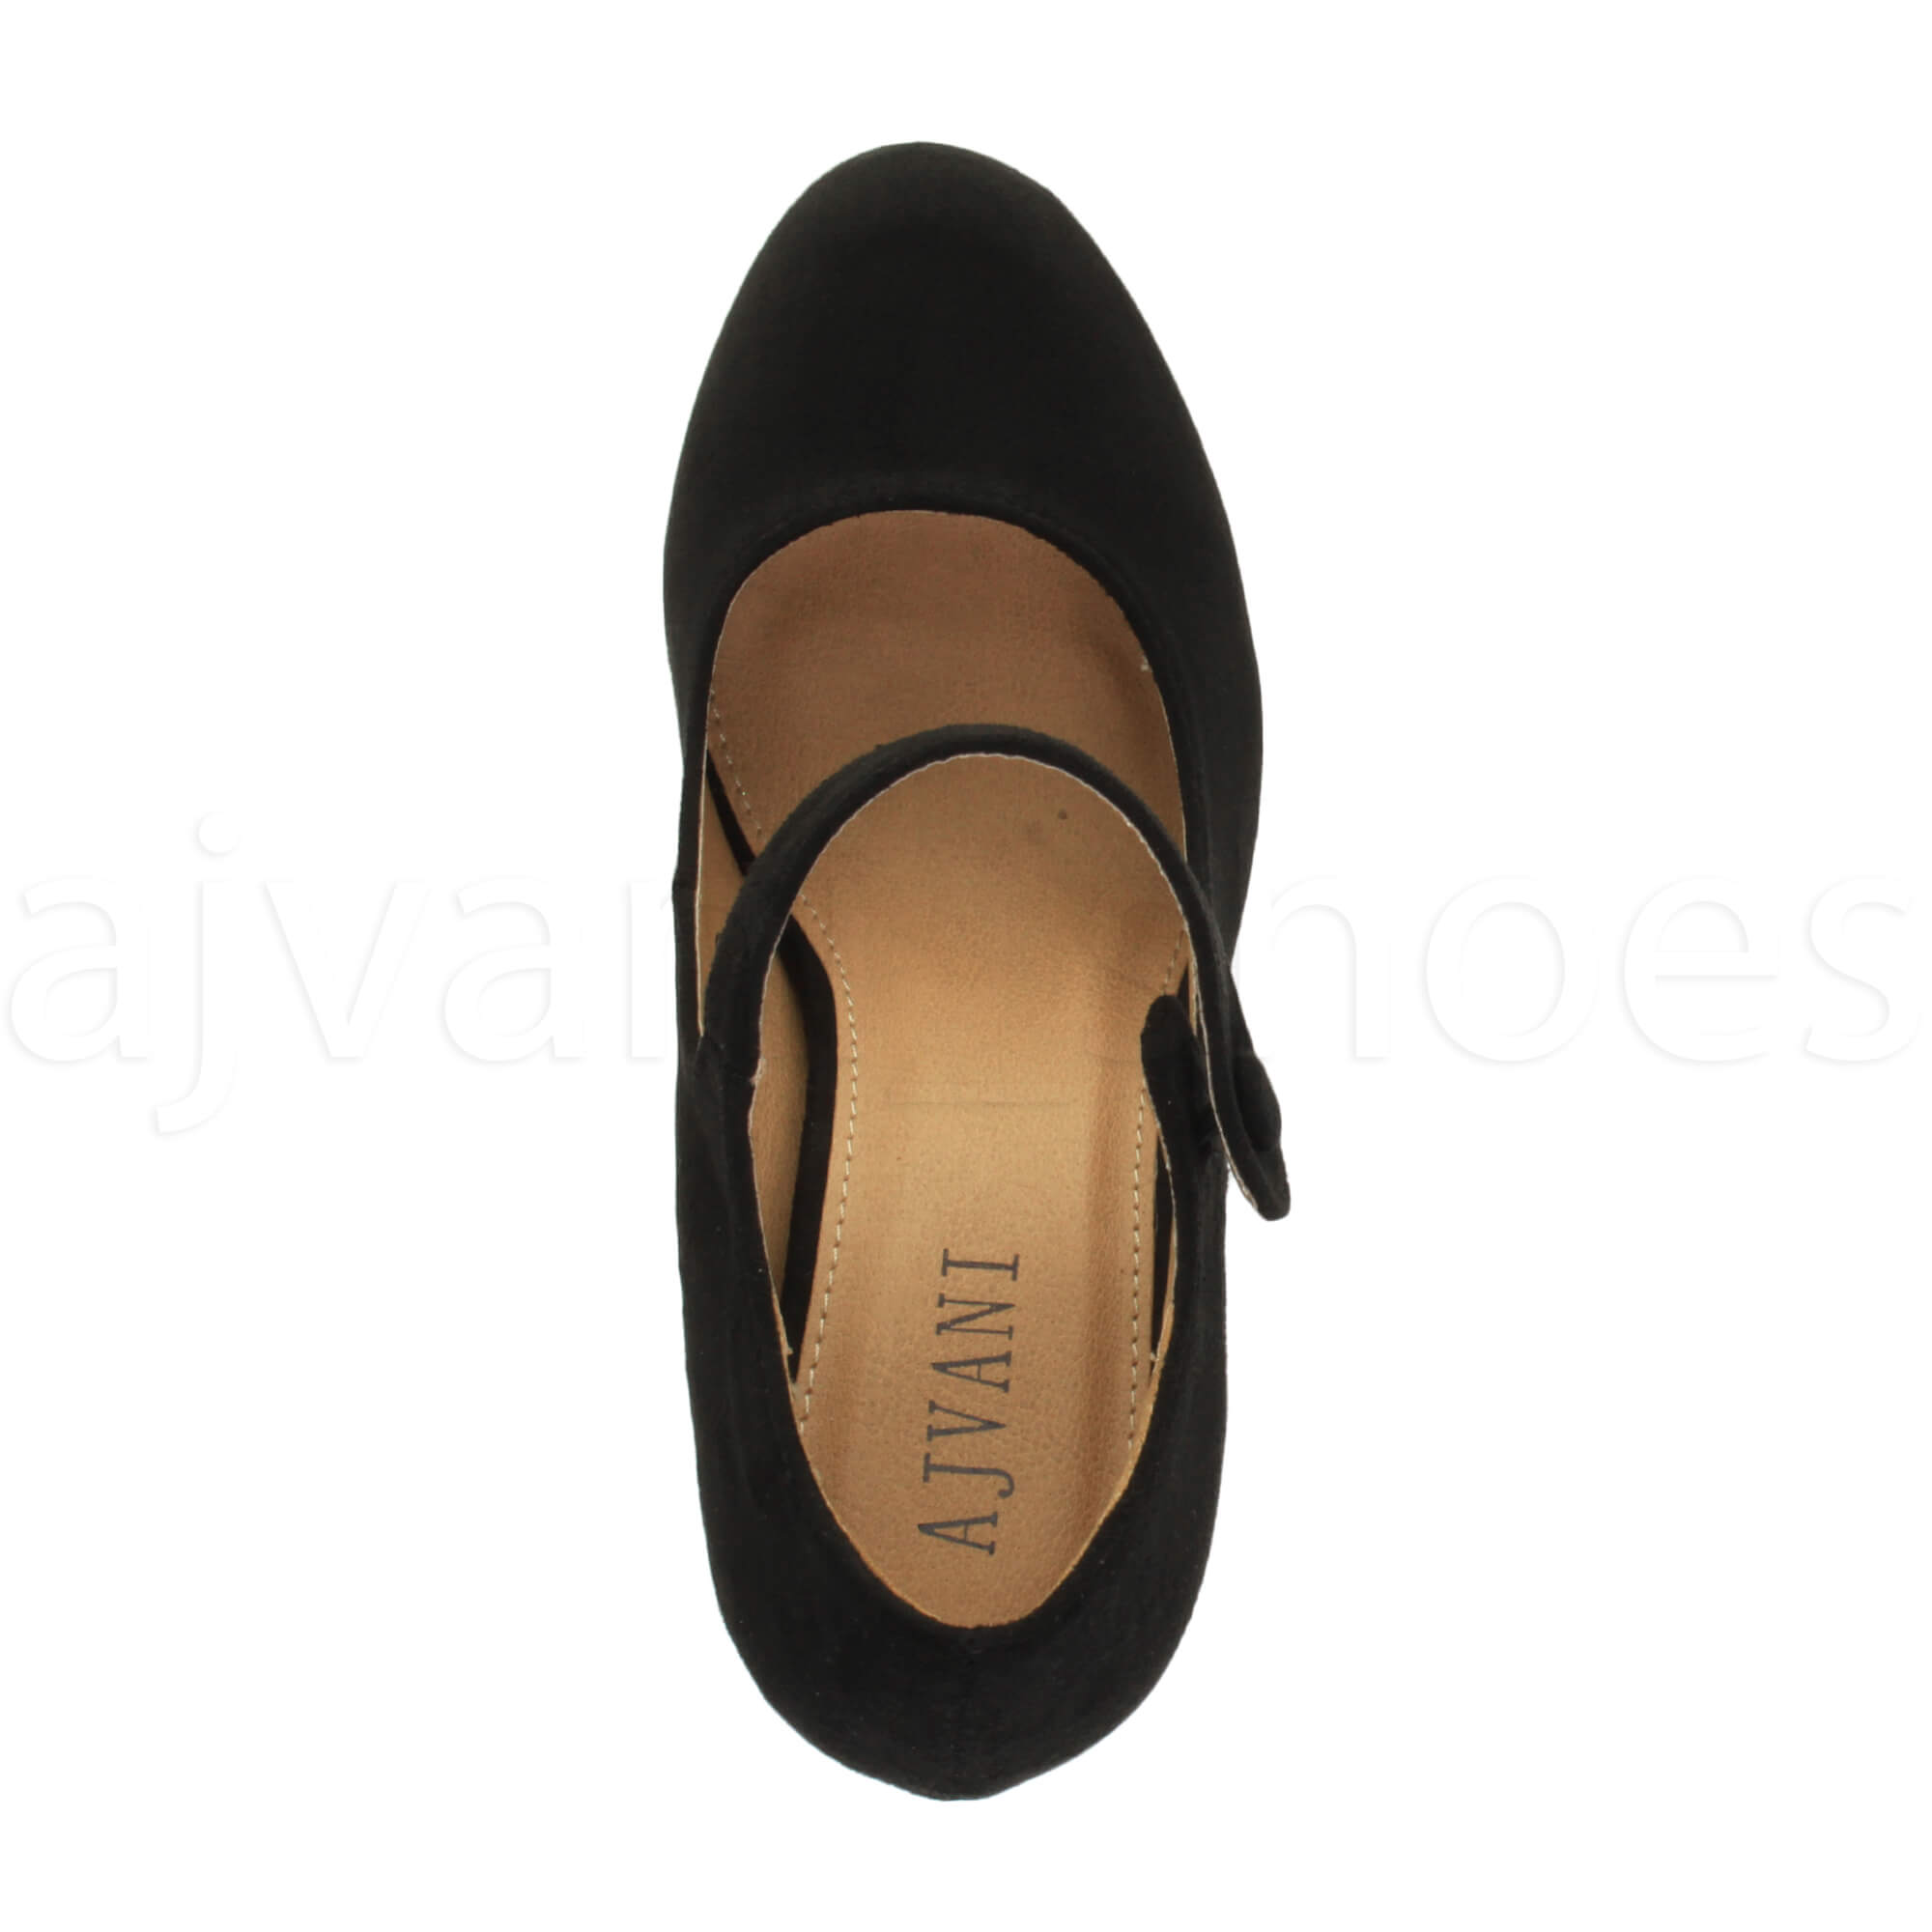 094ad673db971 Details about WOMENS LADIES MID HIGH HEEL MARY JANE EVENING WORK PLATFORM  COURT SHOES SIZE